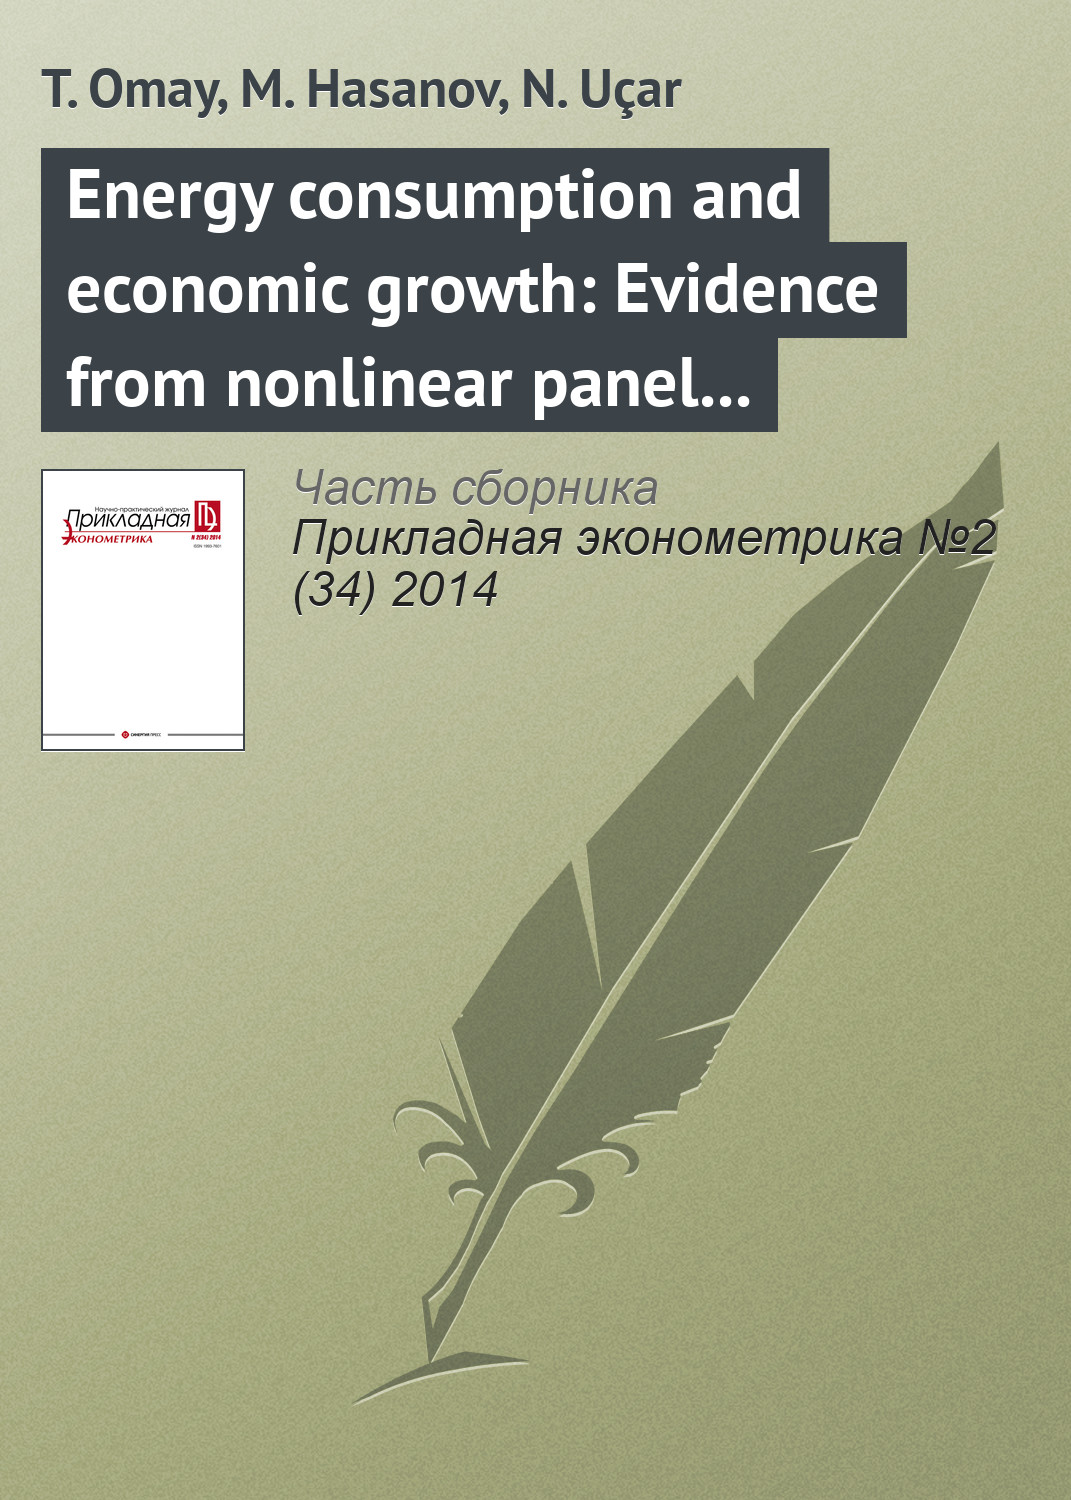 T. Omay Energy consumption and economic growth: Evidence from nonlinear panel cointegration and causality tests business and ethics in a country with political socio economic crisis